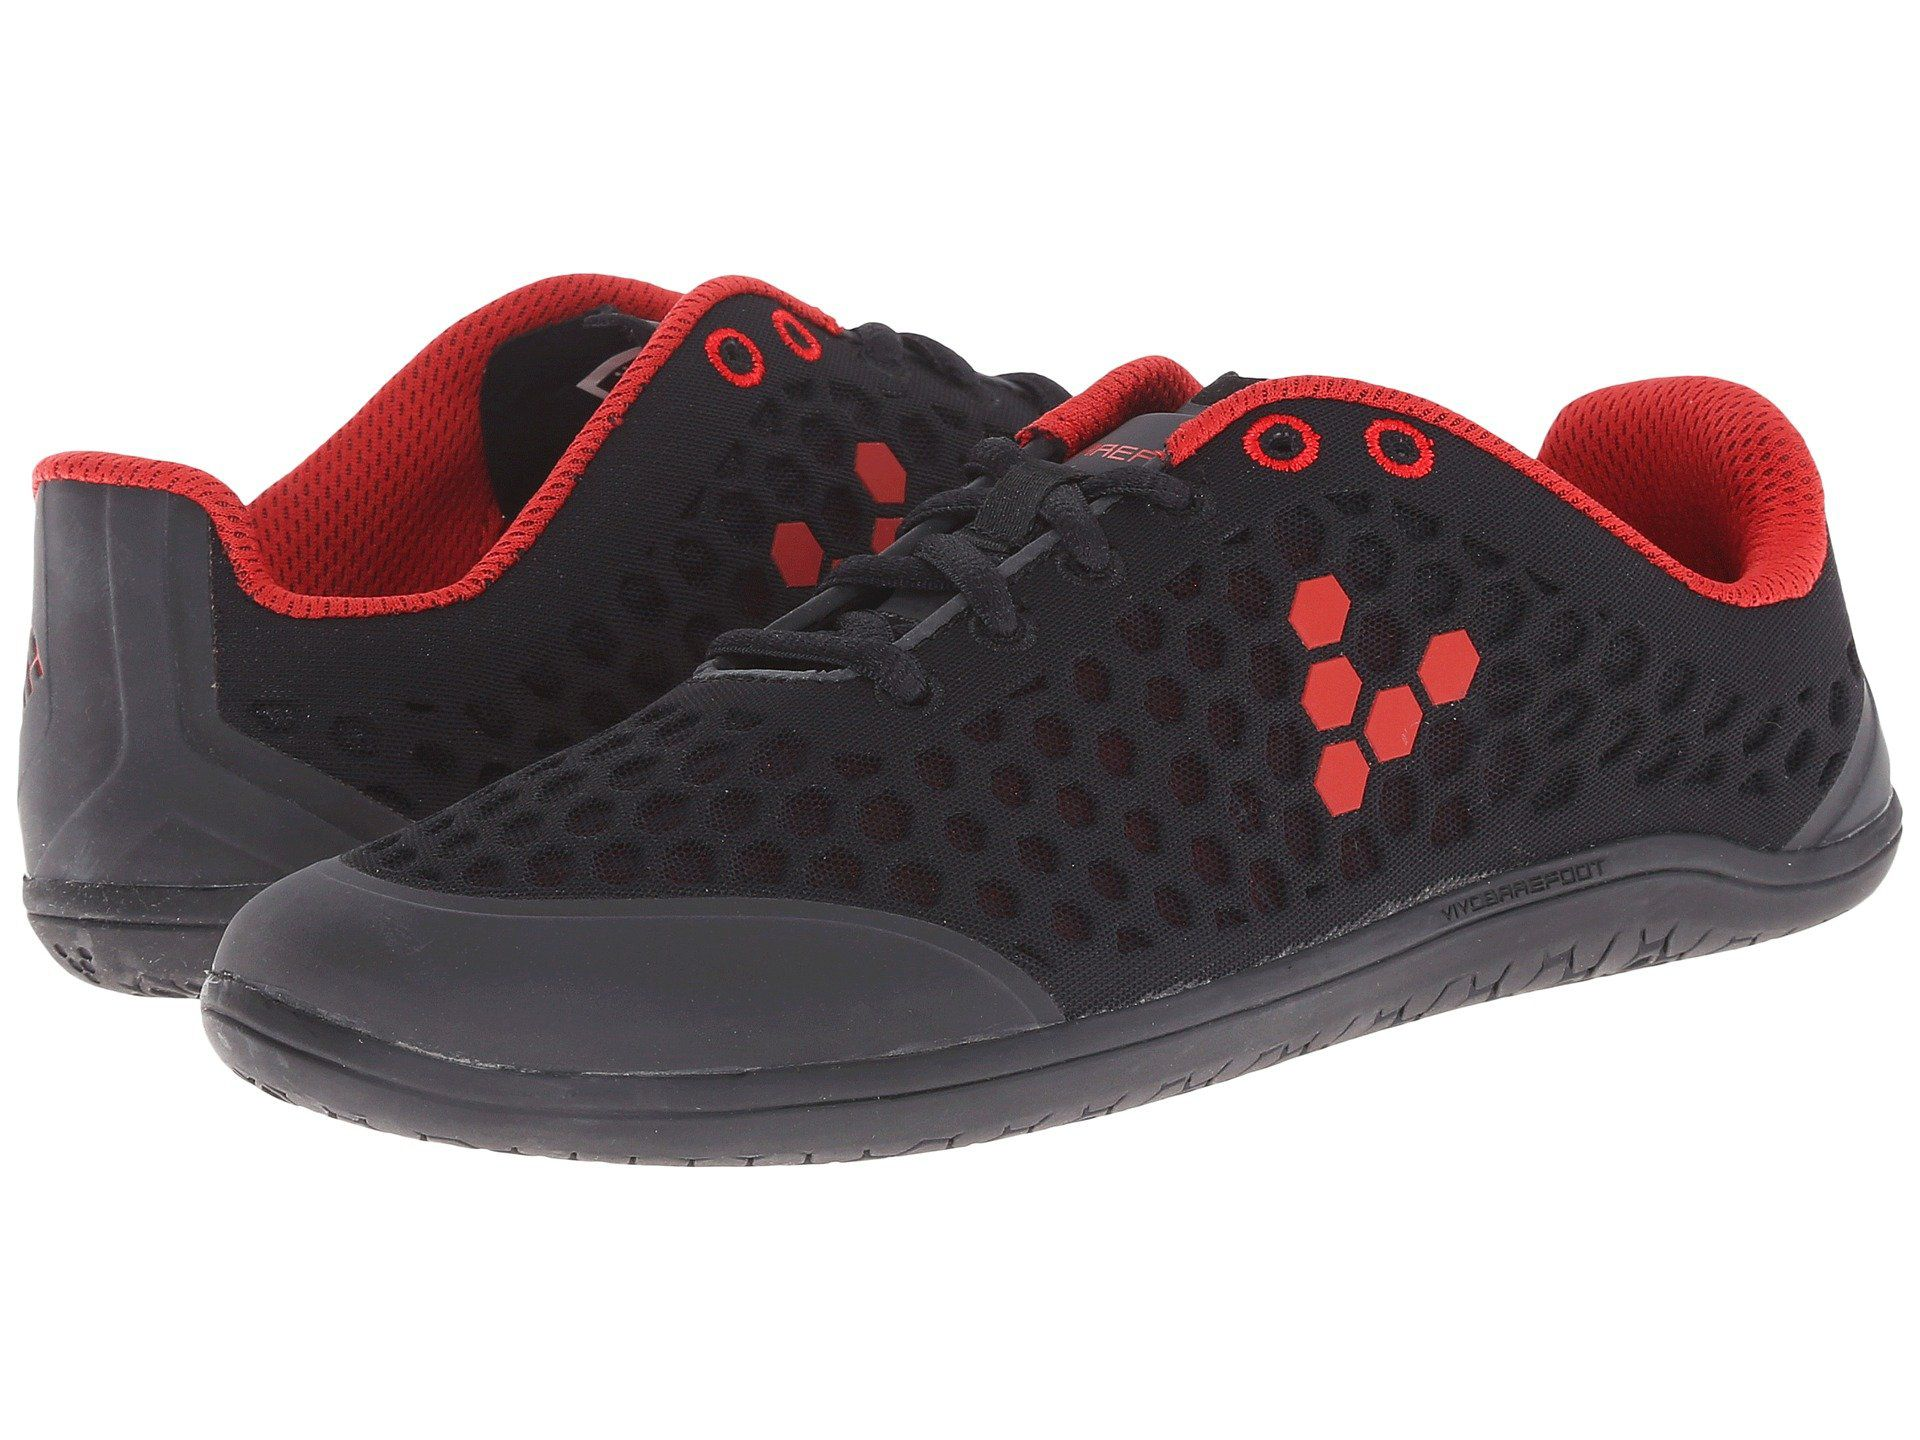 ba7395fd370 The Best Barefoot Running Shoes for Women for 2019